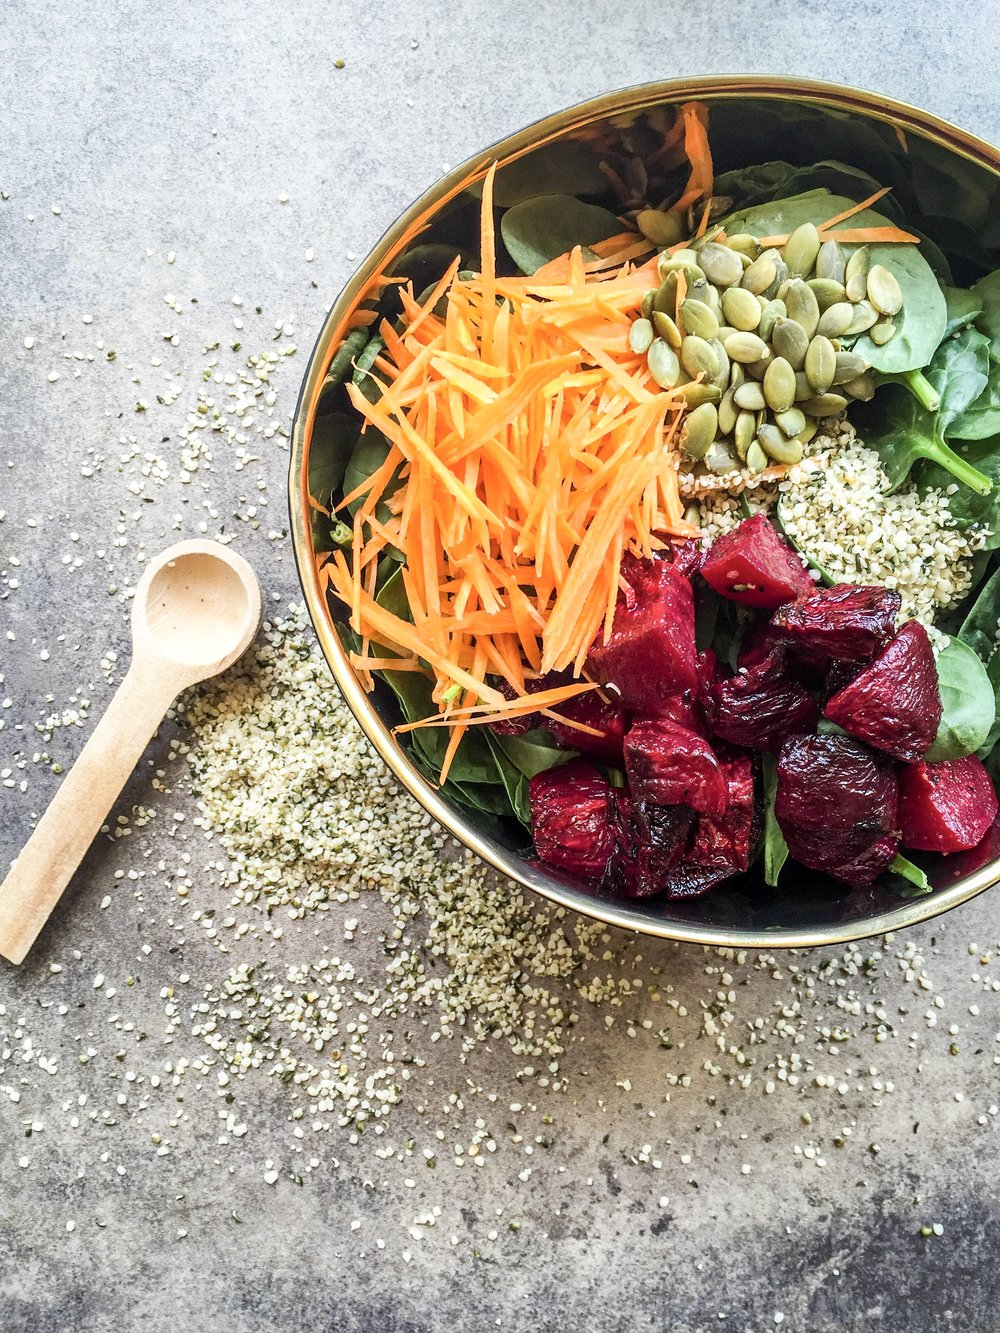 Roasted beet salad with spinach, hemp seeds, pepitas, and carrots.